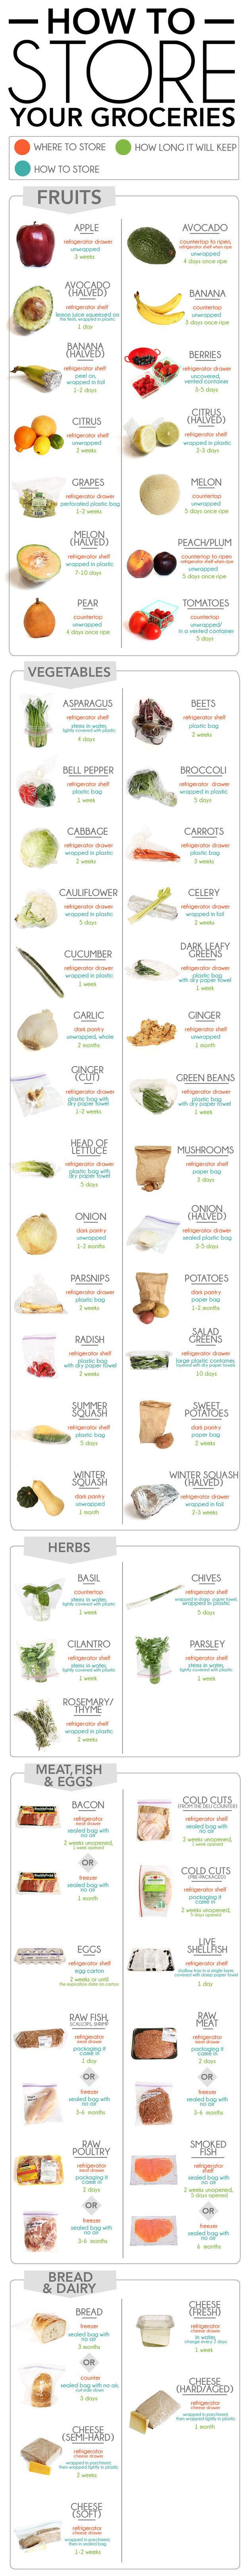 Storing Food Graphic